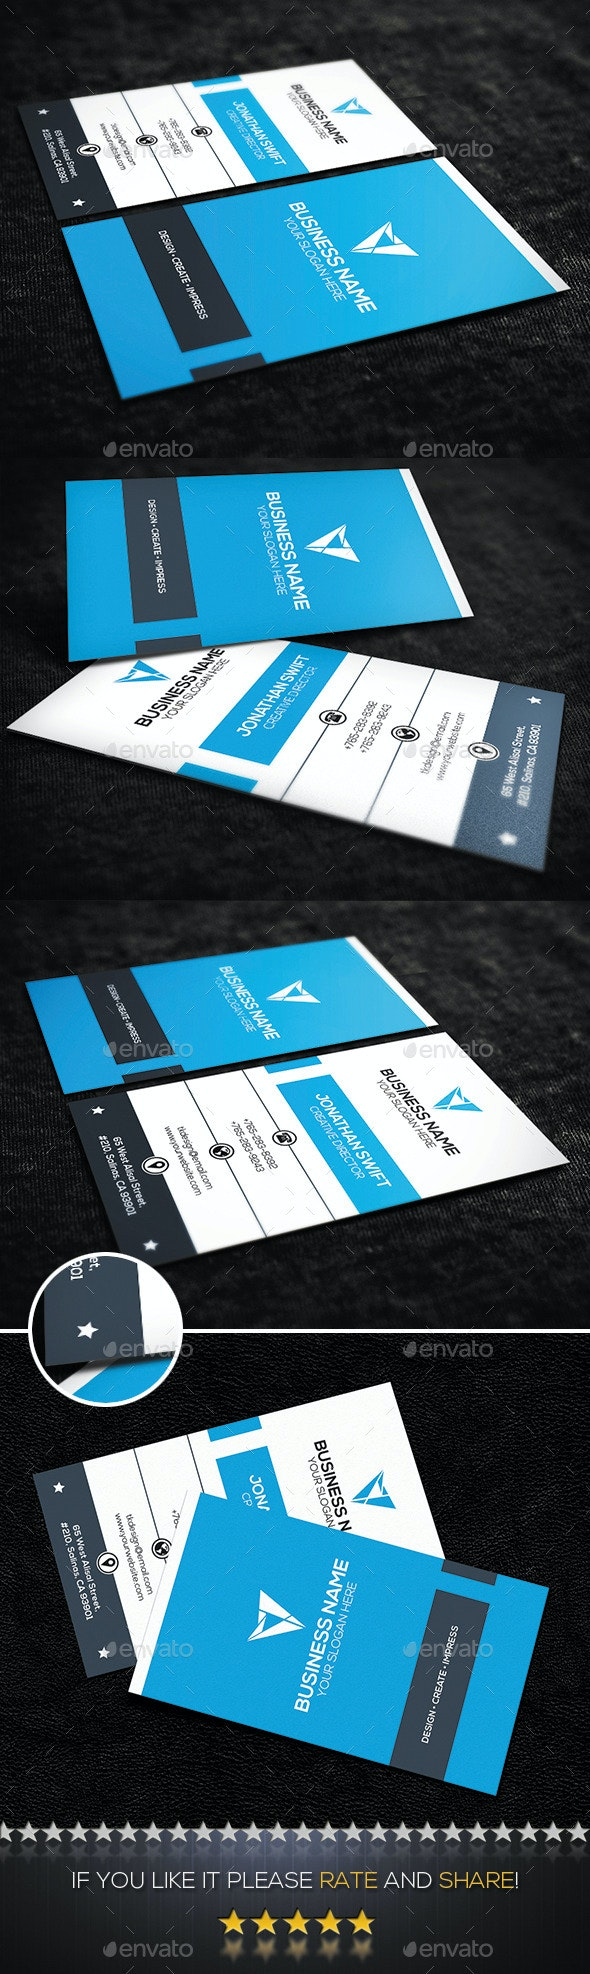 Blue Vertical Corporate Business Card  - Corporate Business Cards